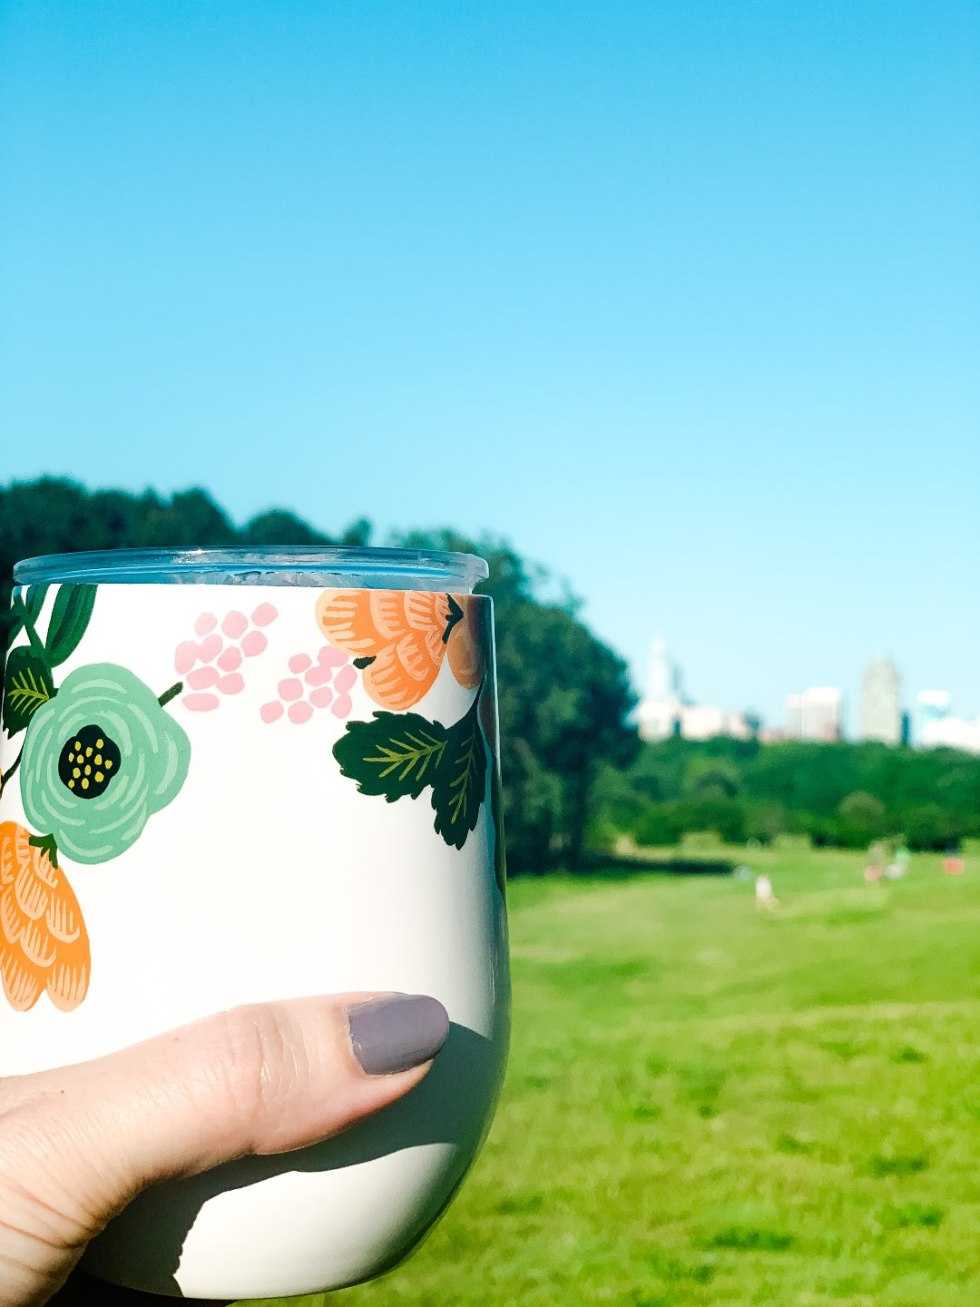 The Top 3 Places to Have a Picnic in Raleigh - I'm Fixin' To - @mbg0112 | Picnic in Raleigh by popular North Carolina blog, I'm Fixin' To: image of a woman holding a wine cooler tumbler.